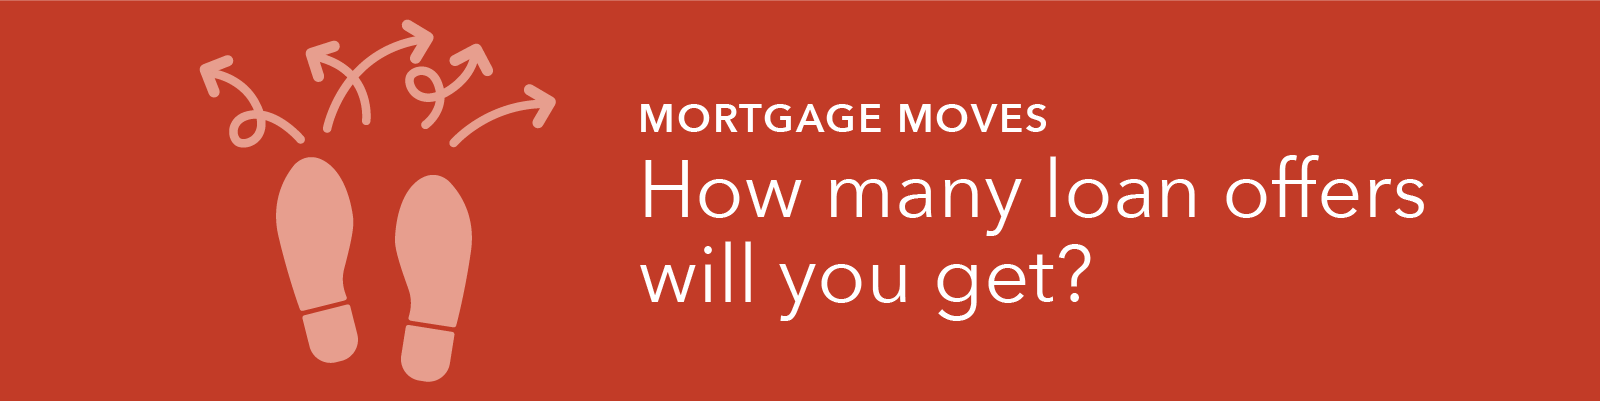 Mortgage Moves: How many loan offers will you get? graphic